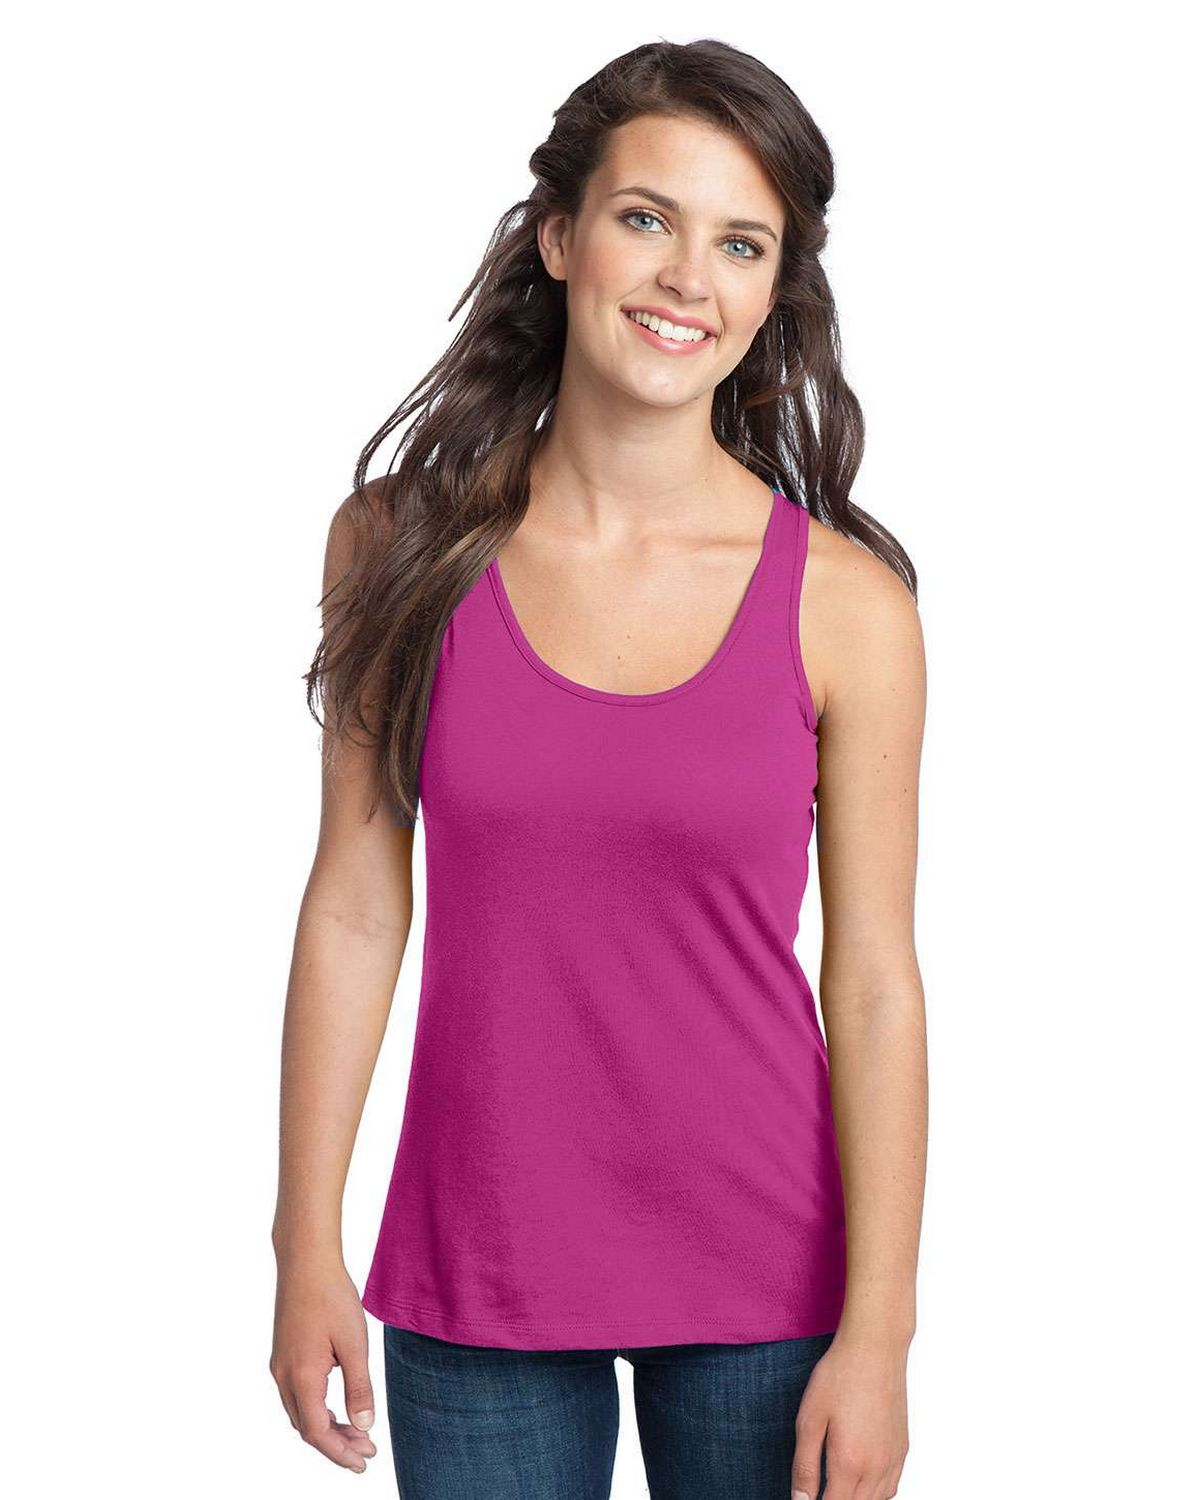 District DT237 Juniors Racerback Tank - Deep Royal - M DT237